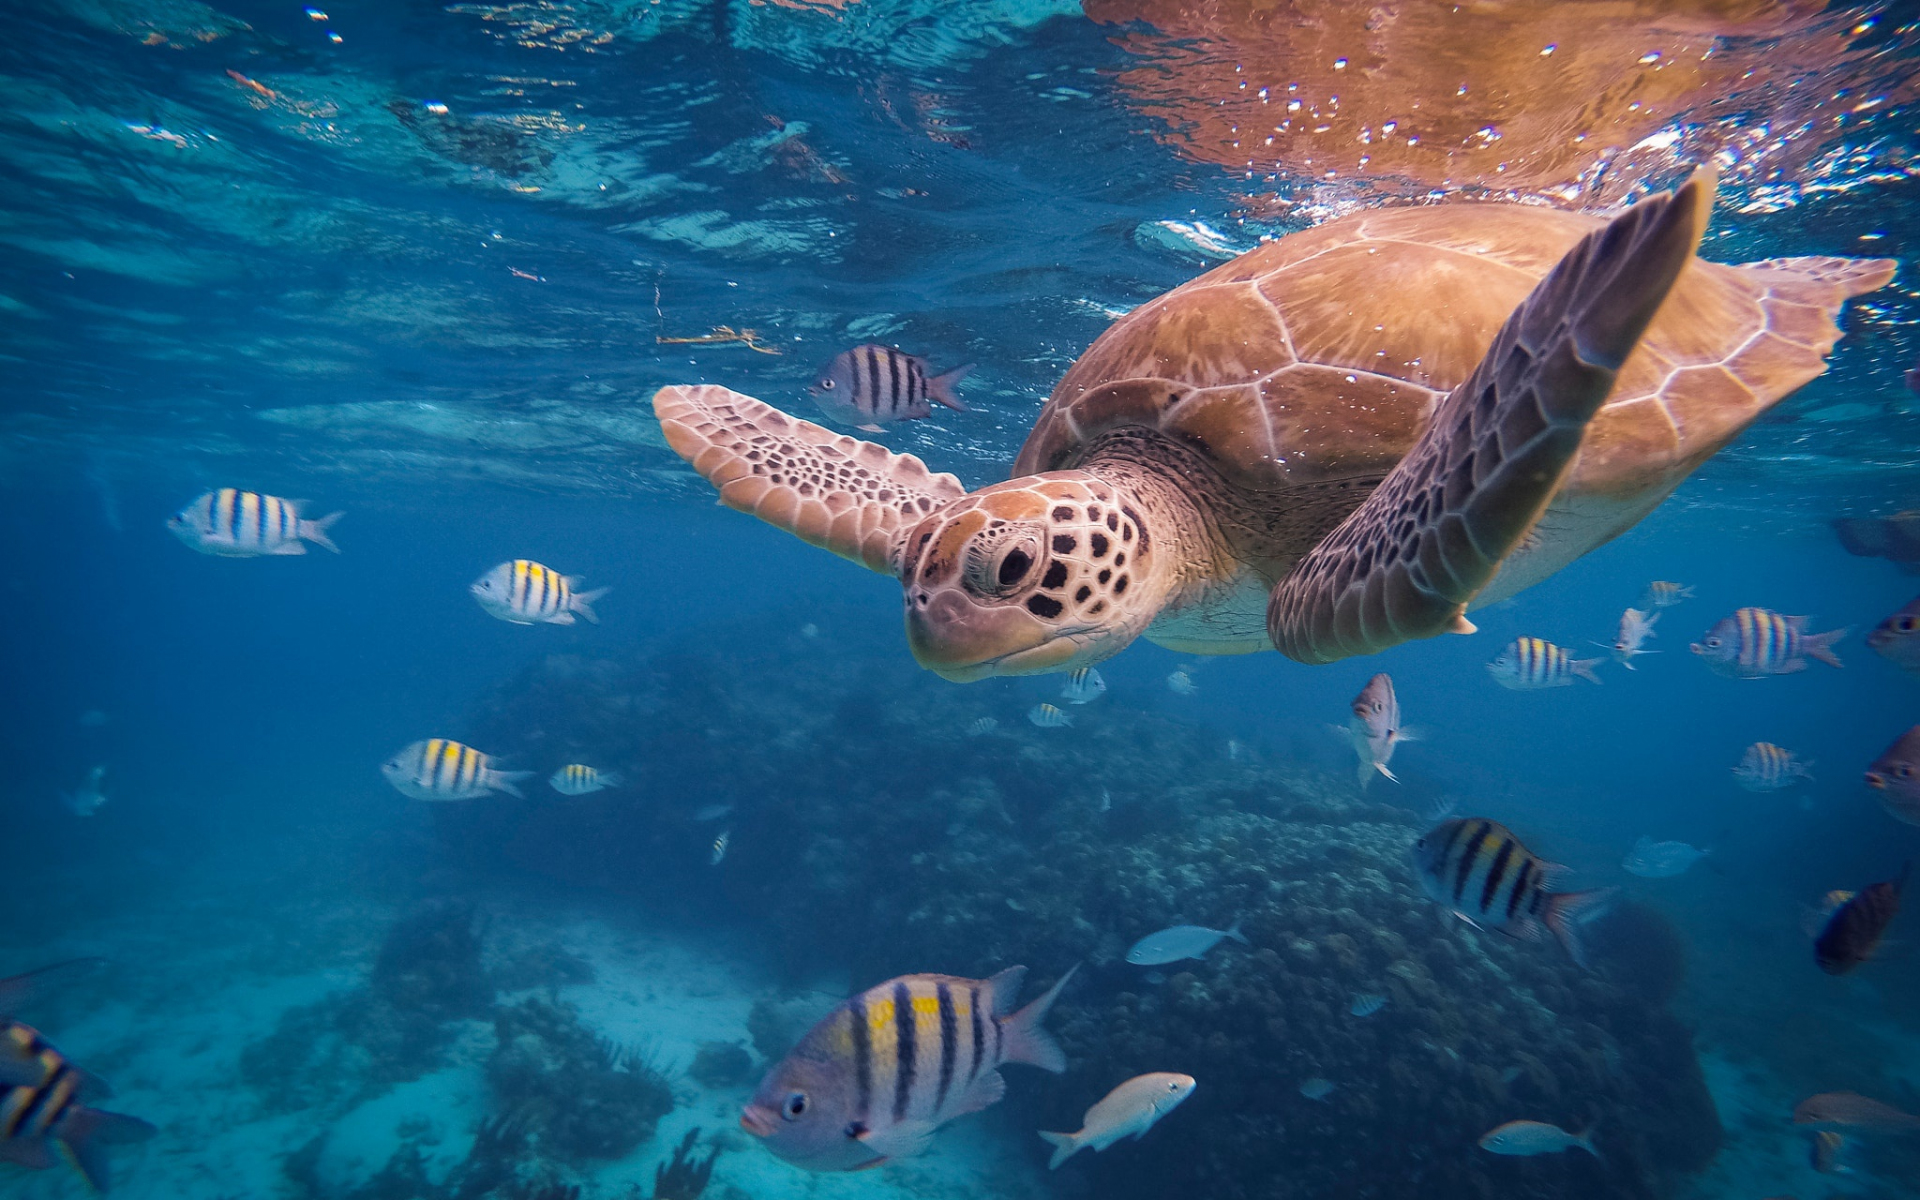 Desktop Wallpaper Turtle Tropical Fishes Underwater Hd Image Picture Background 3b63f5